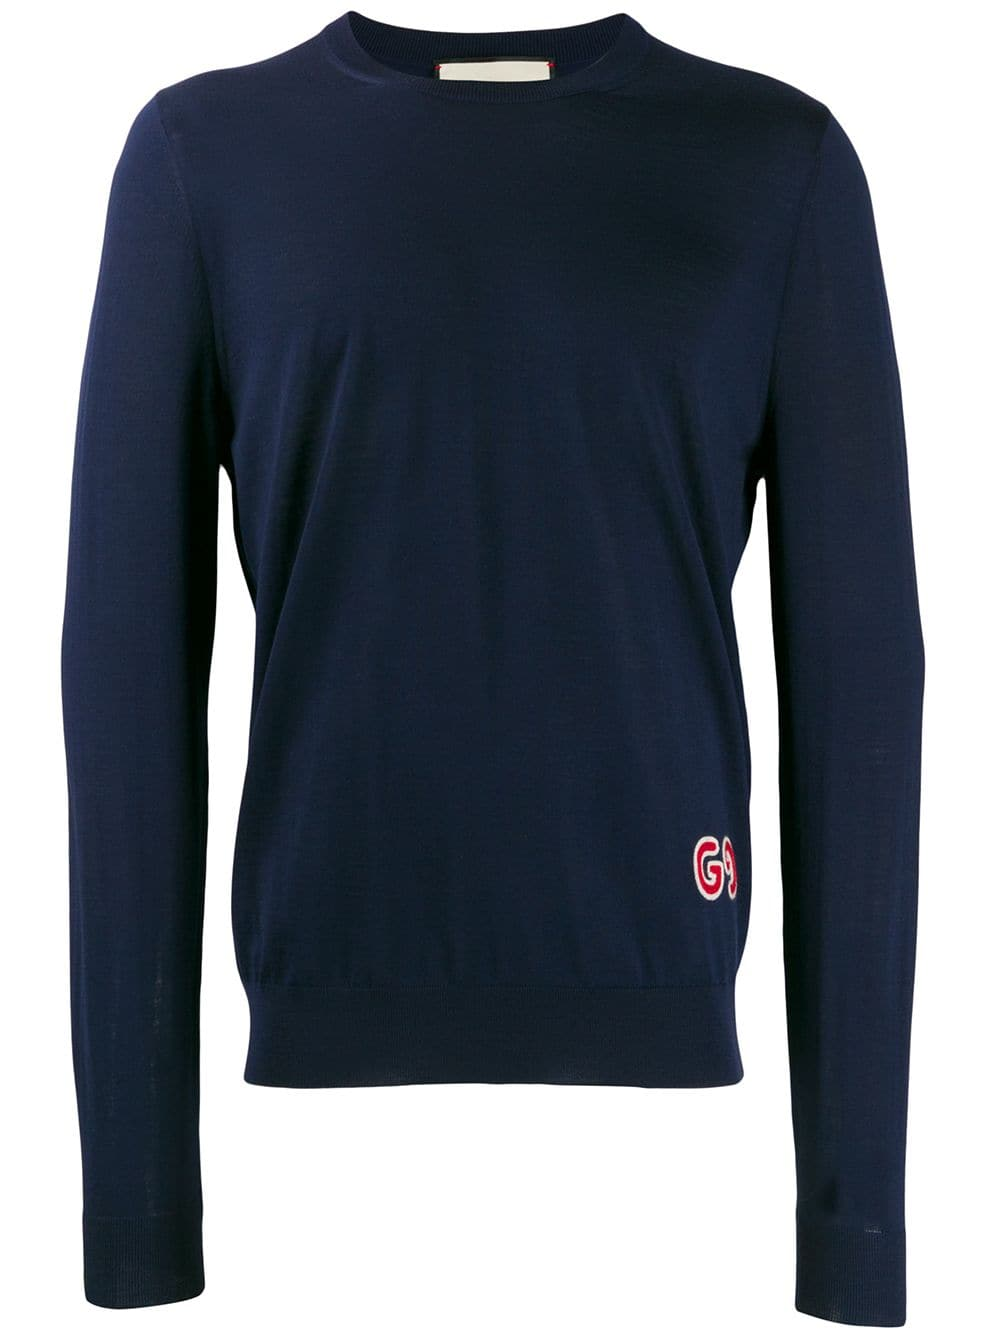 slim fit navy wool jumper featuring a round neck GUCCI |  | 576810-XKAOW4440